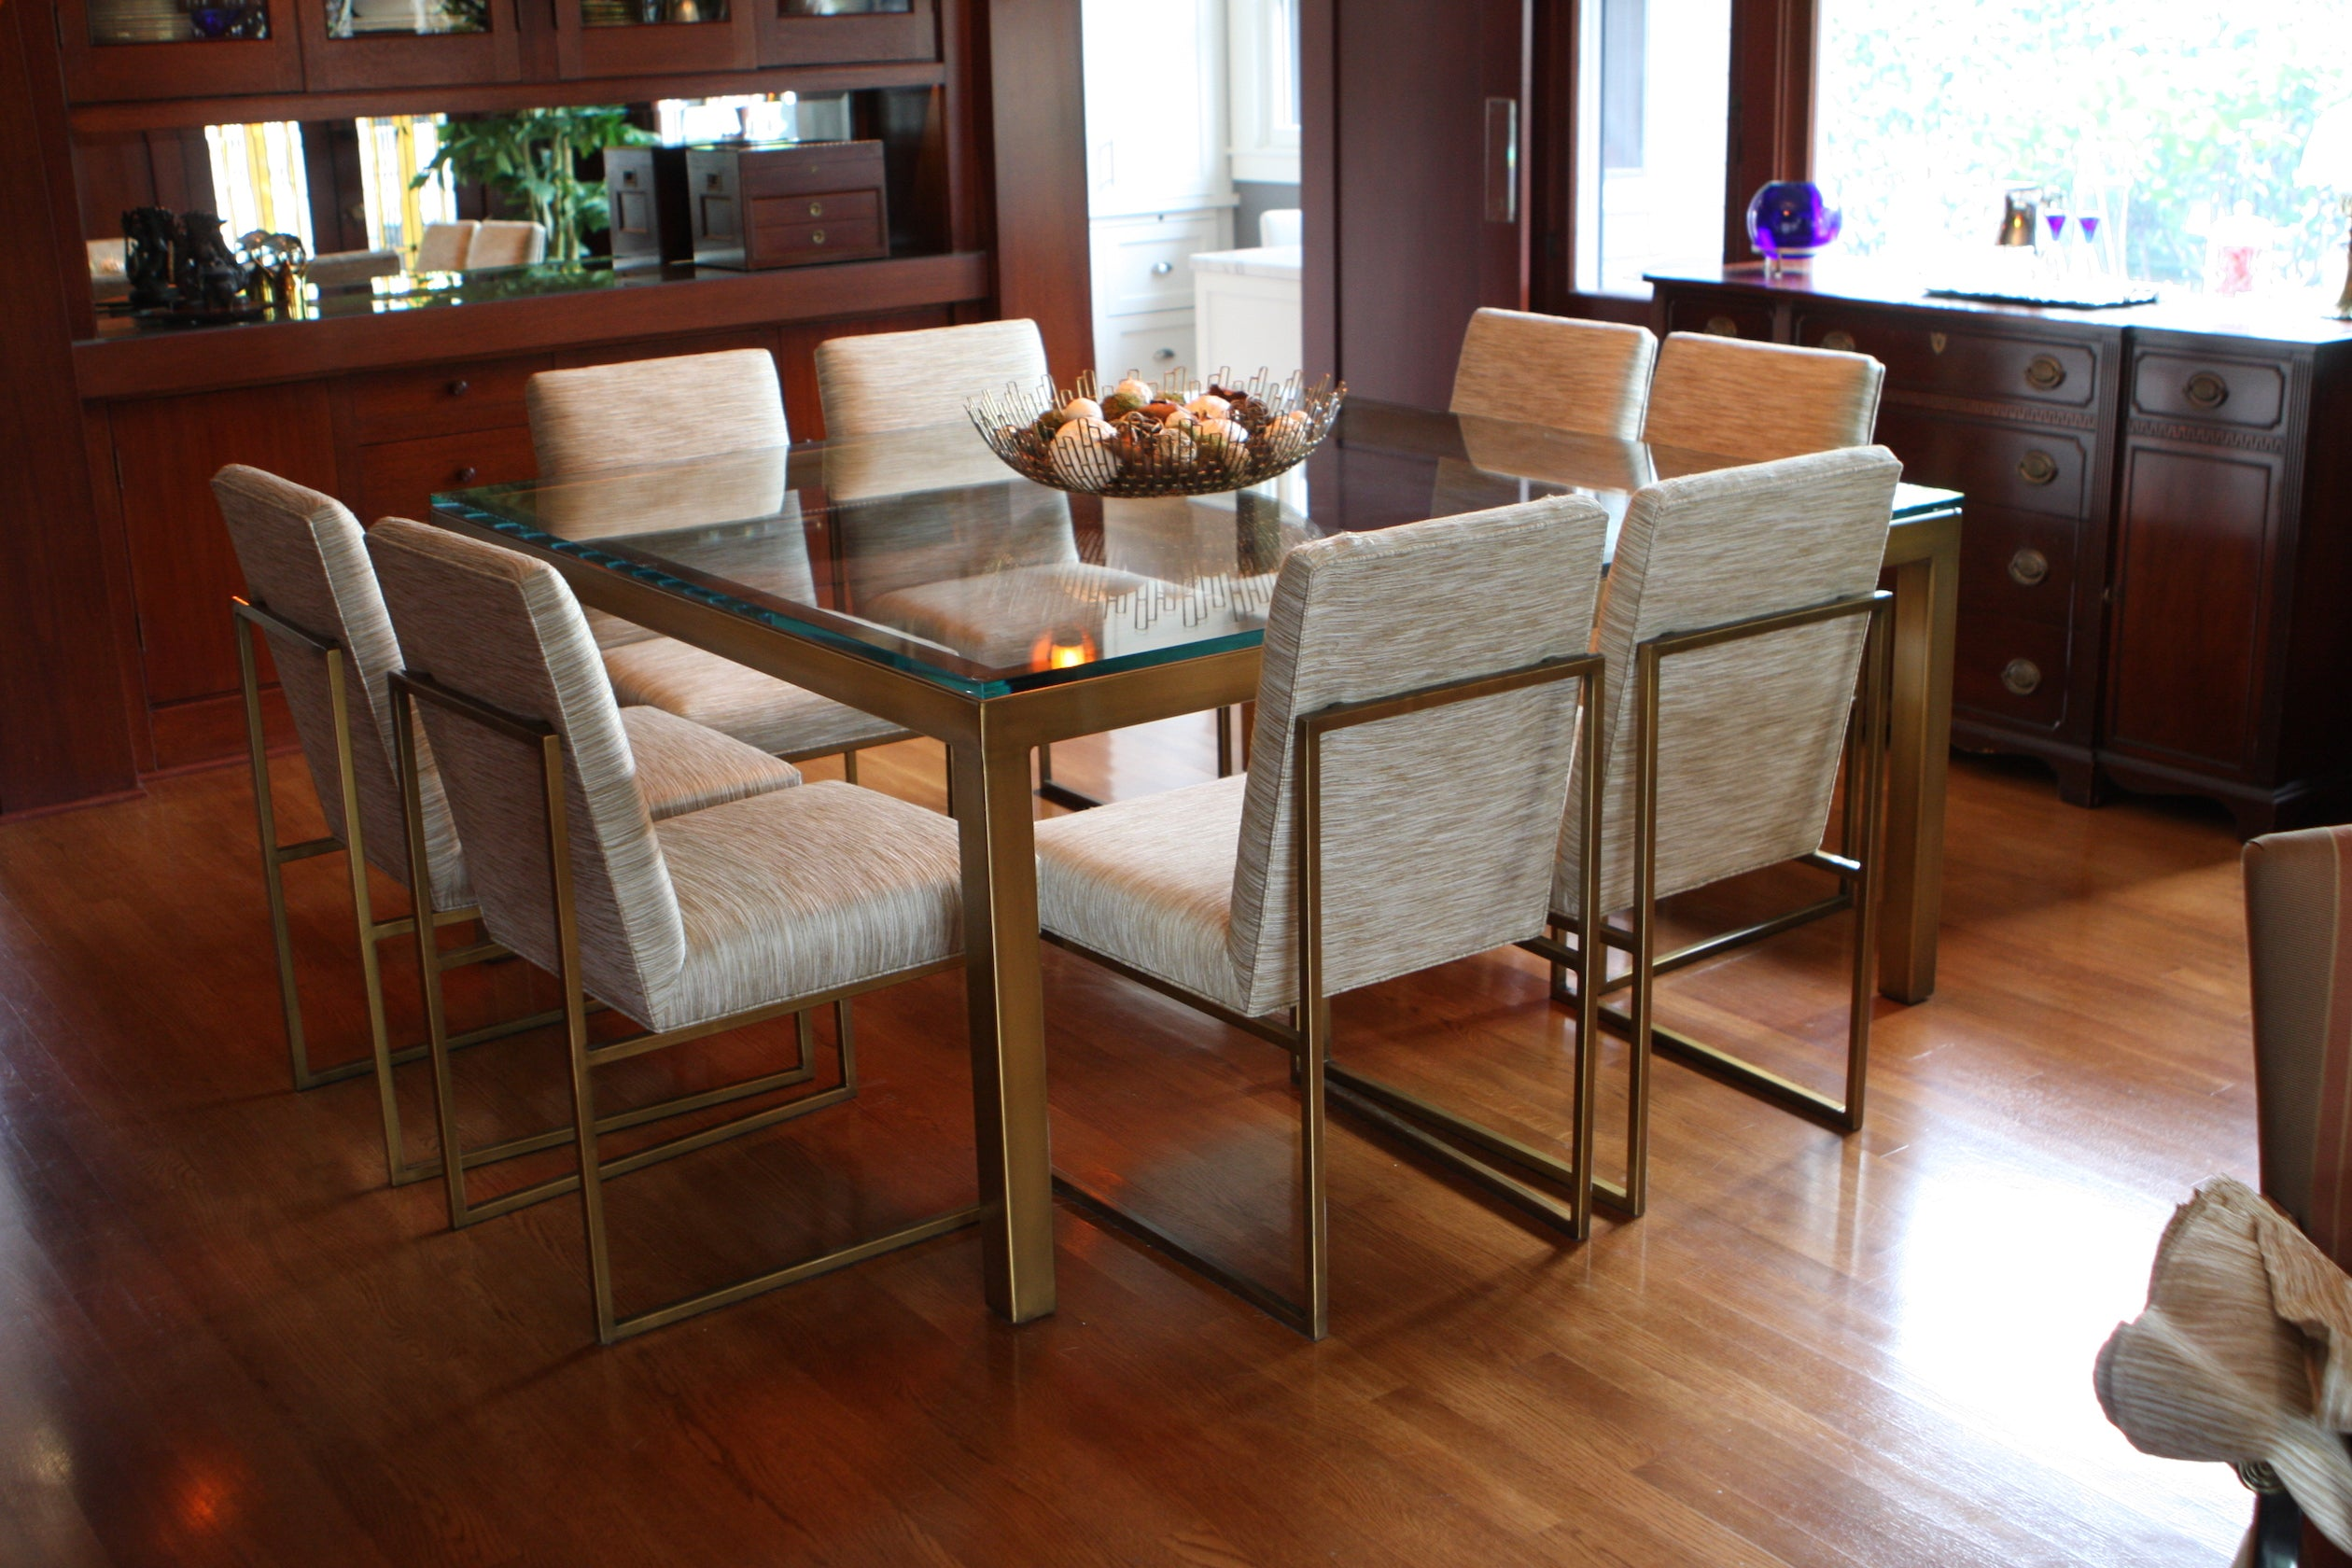 Craftsman Home Meets Modern Dining Room Set – Mortise & Tenon